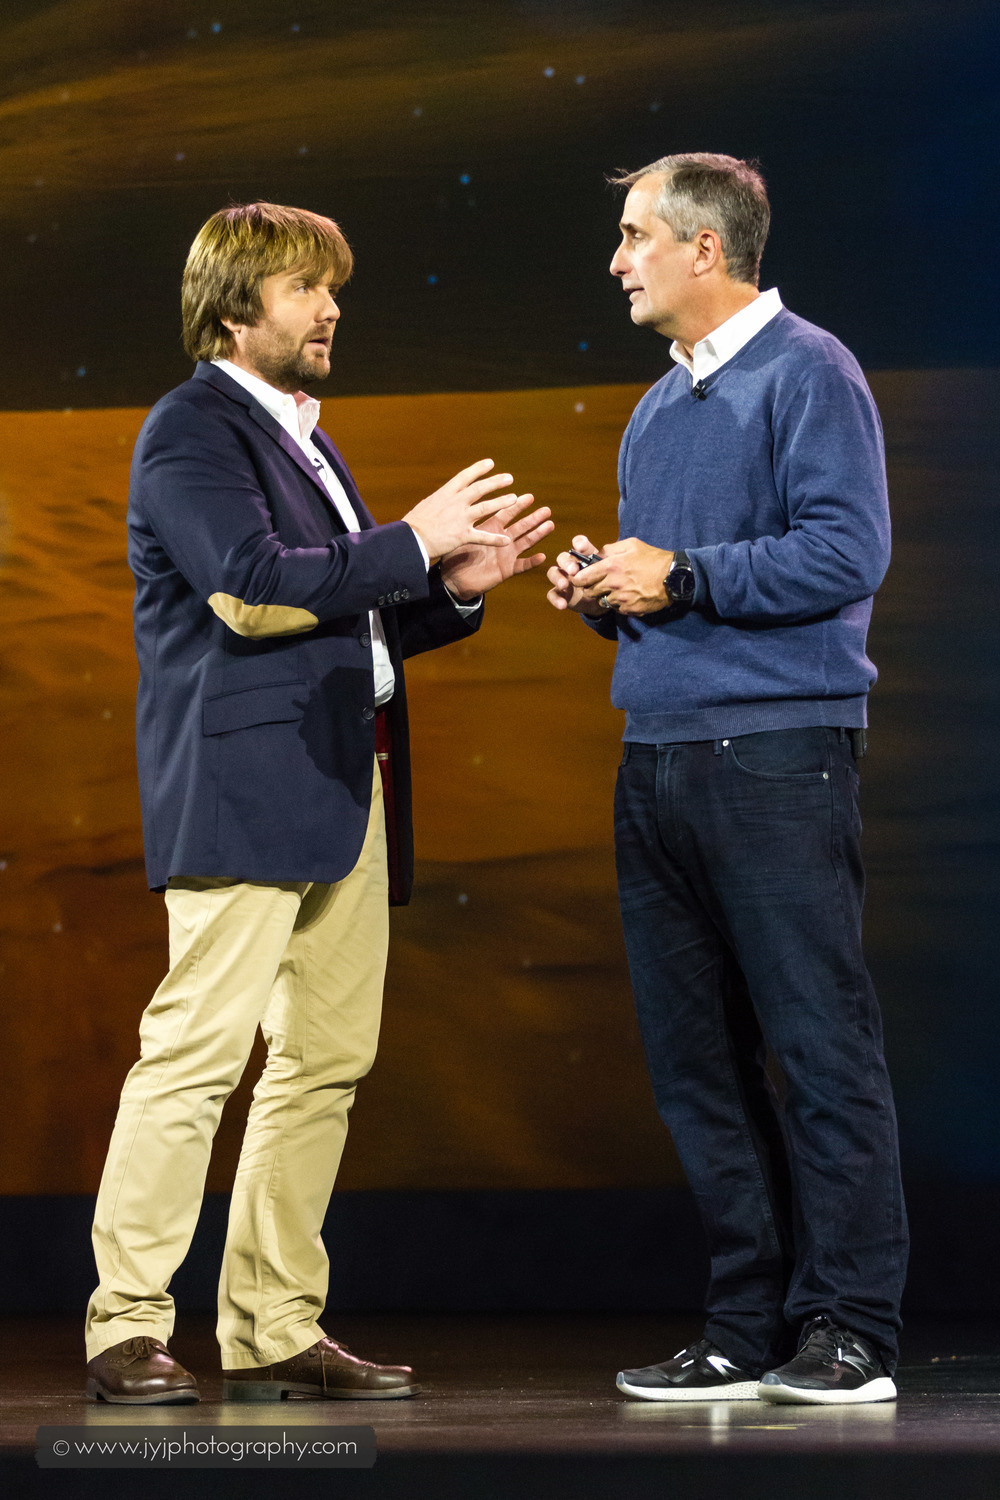 Andreas Gall and Brian Krzanich